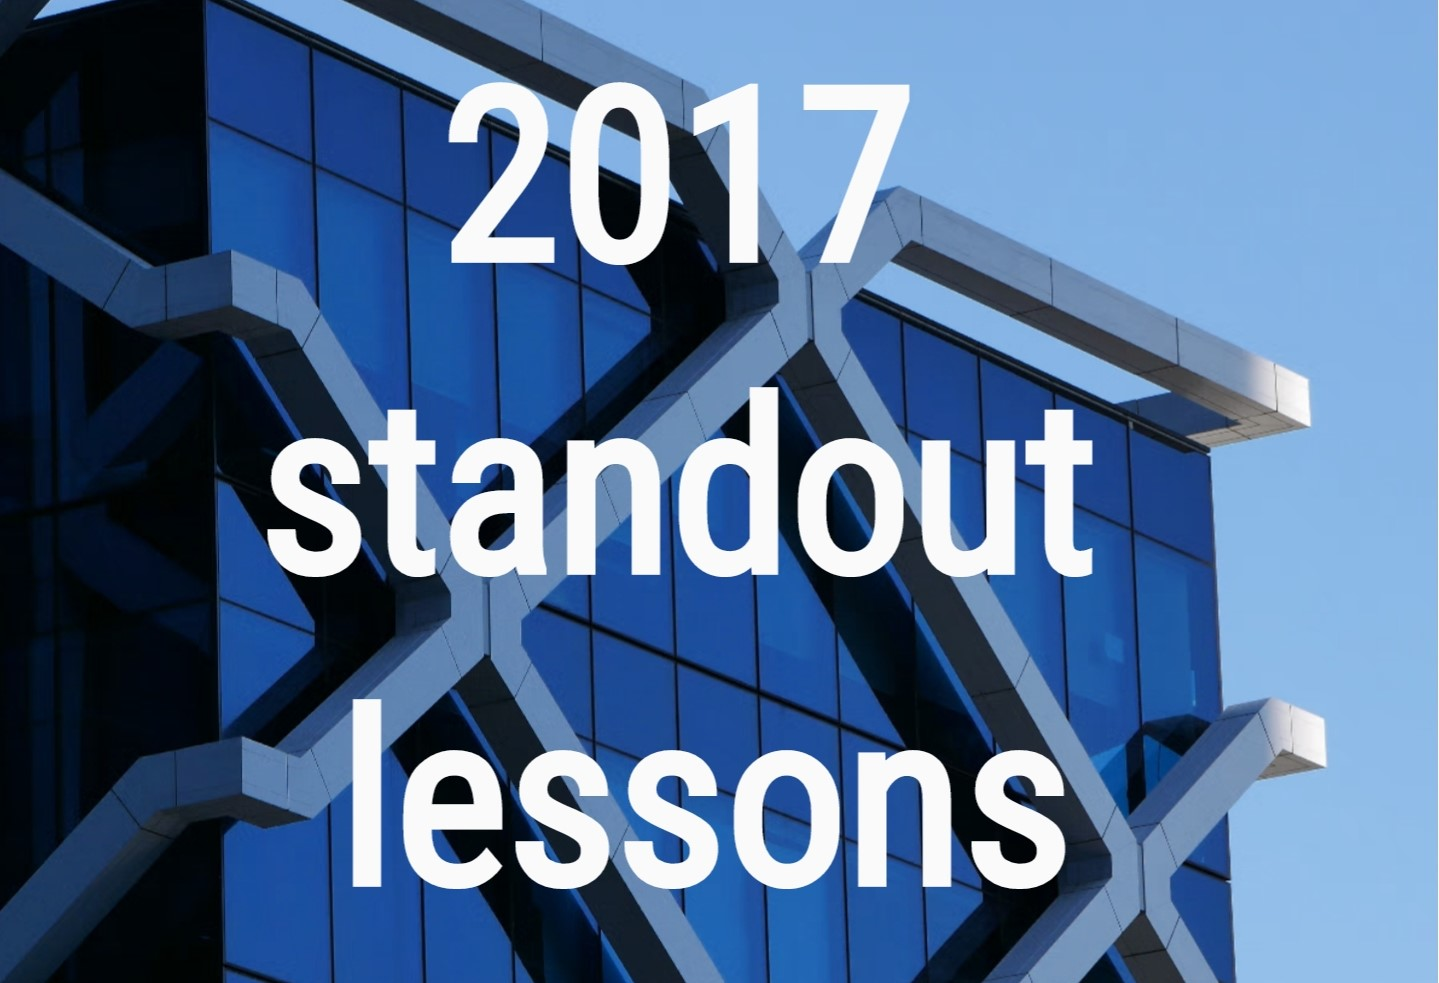 2017 standout lessons, windows, building features